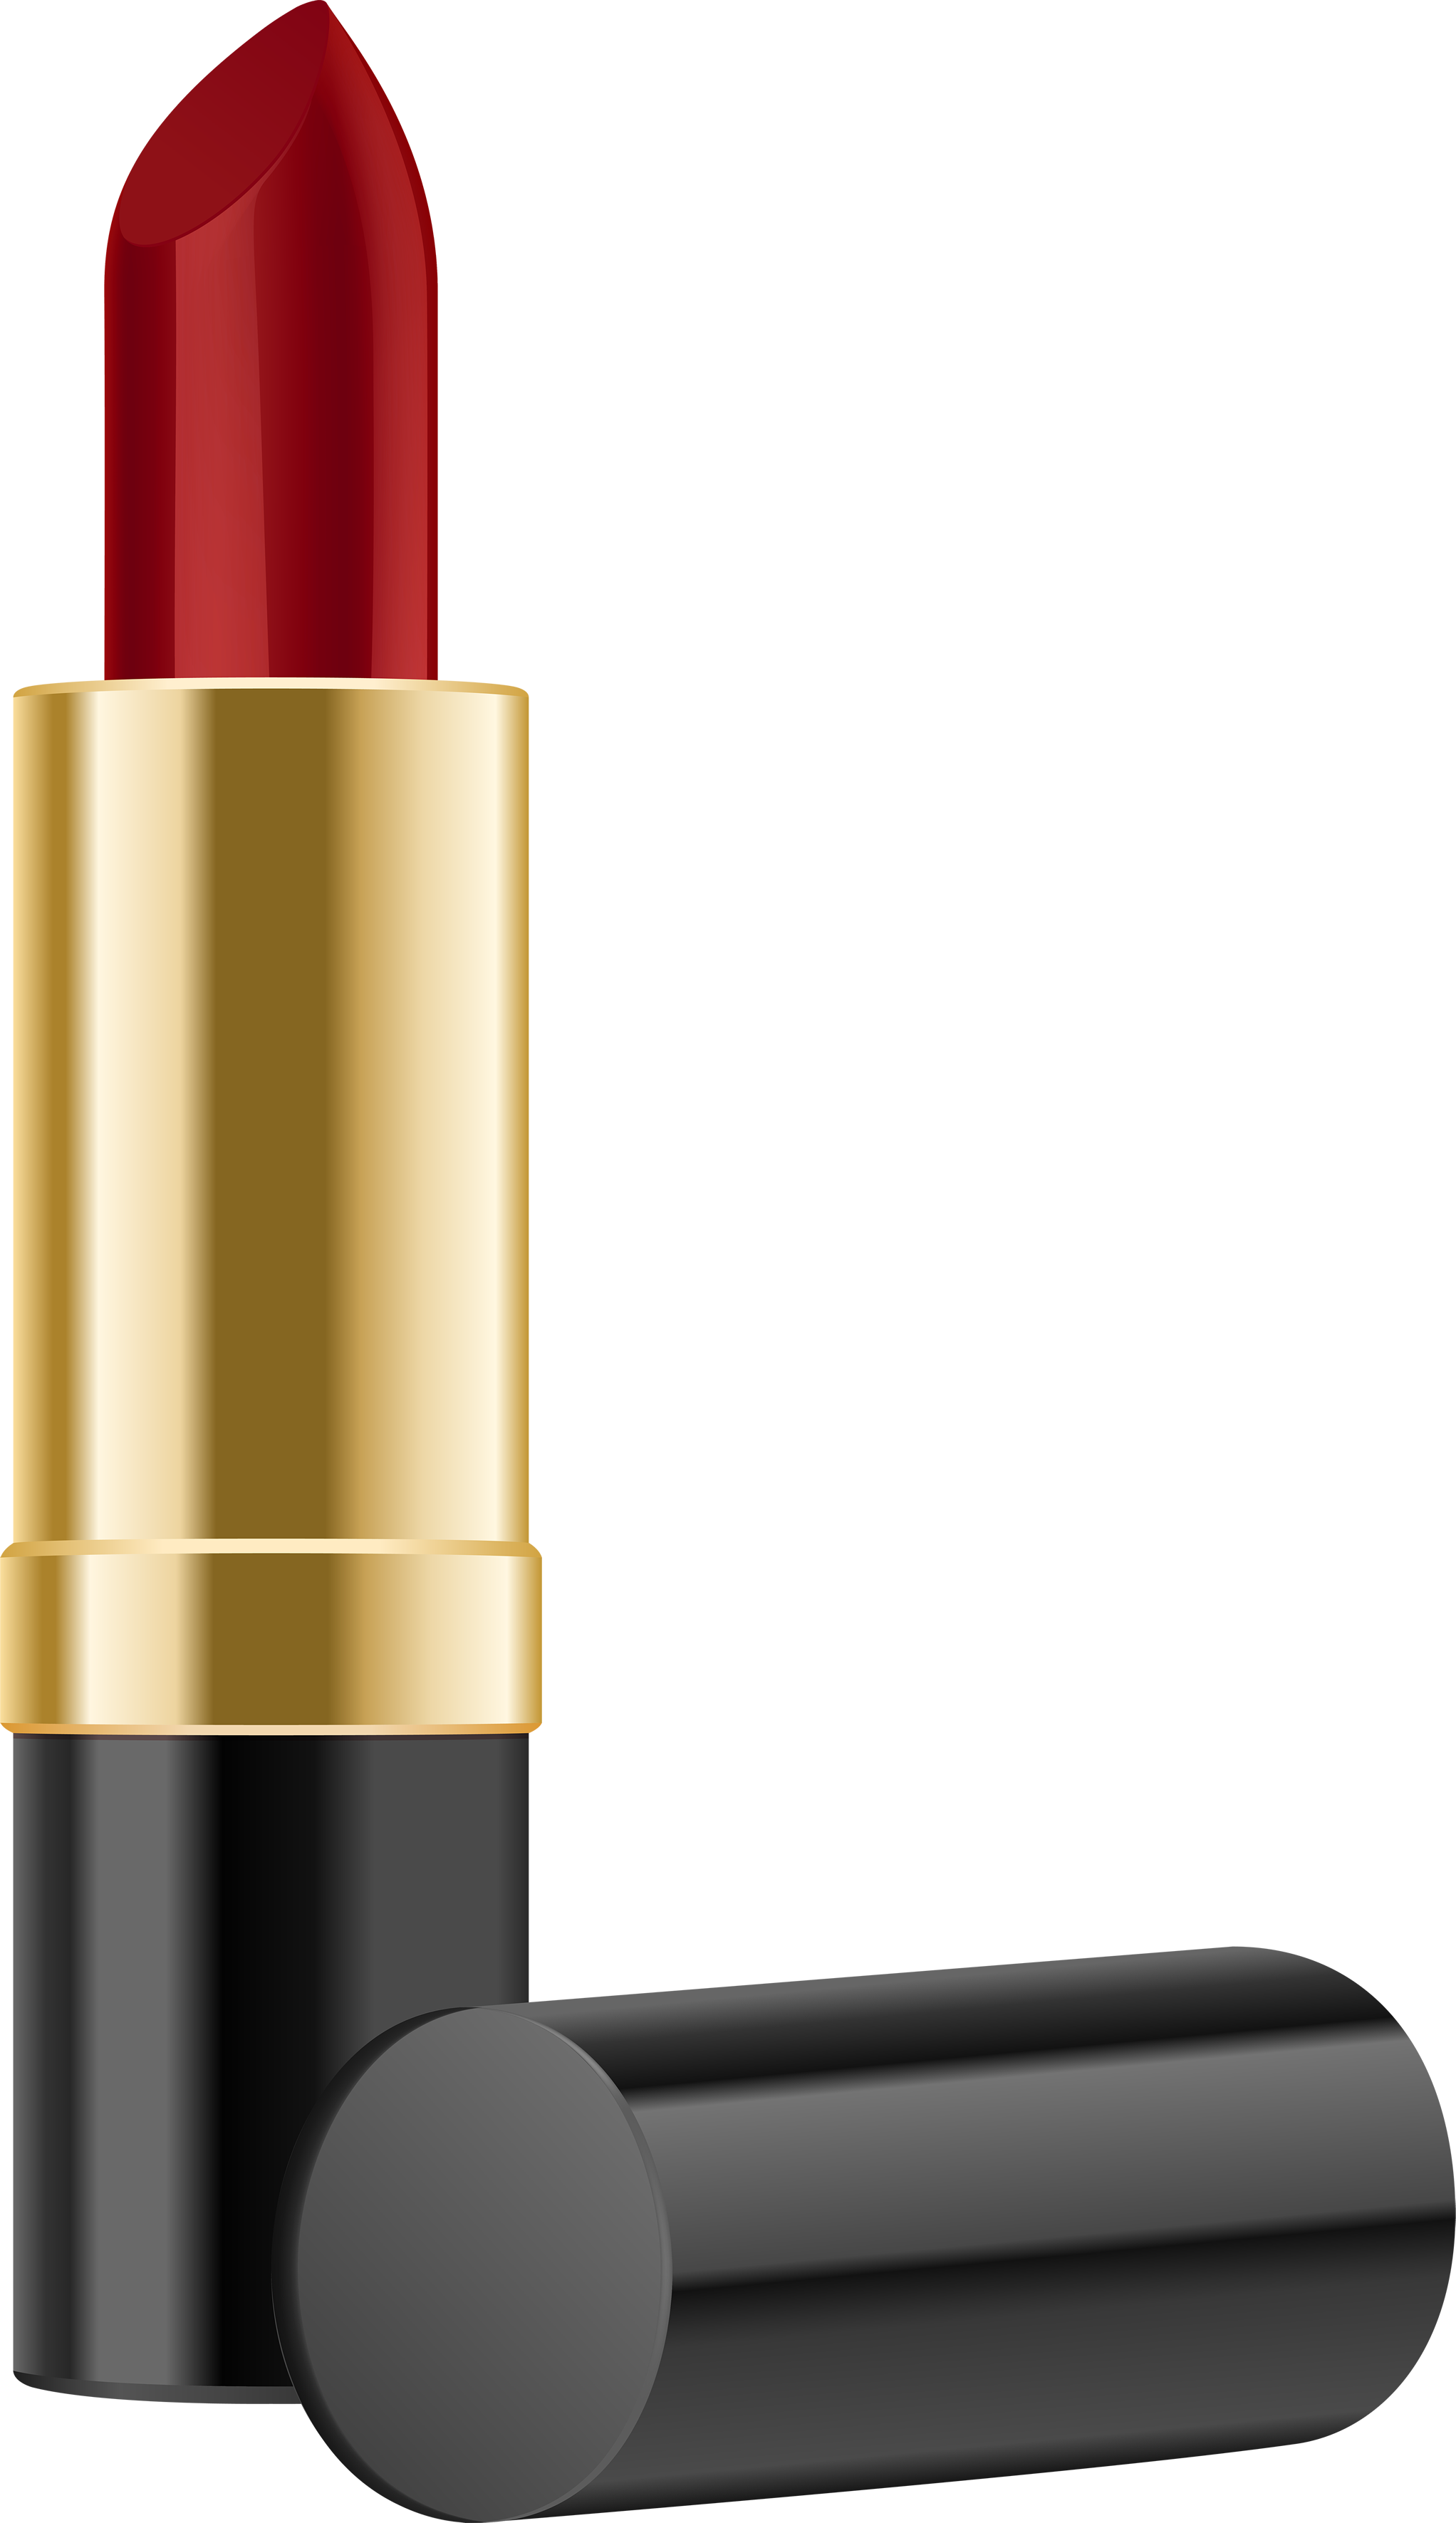 Lipstick clipart pdf. Png images free download